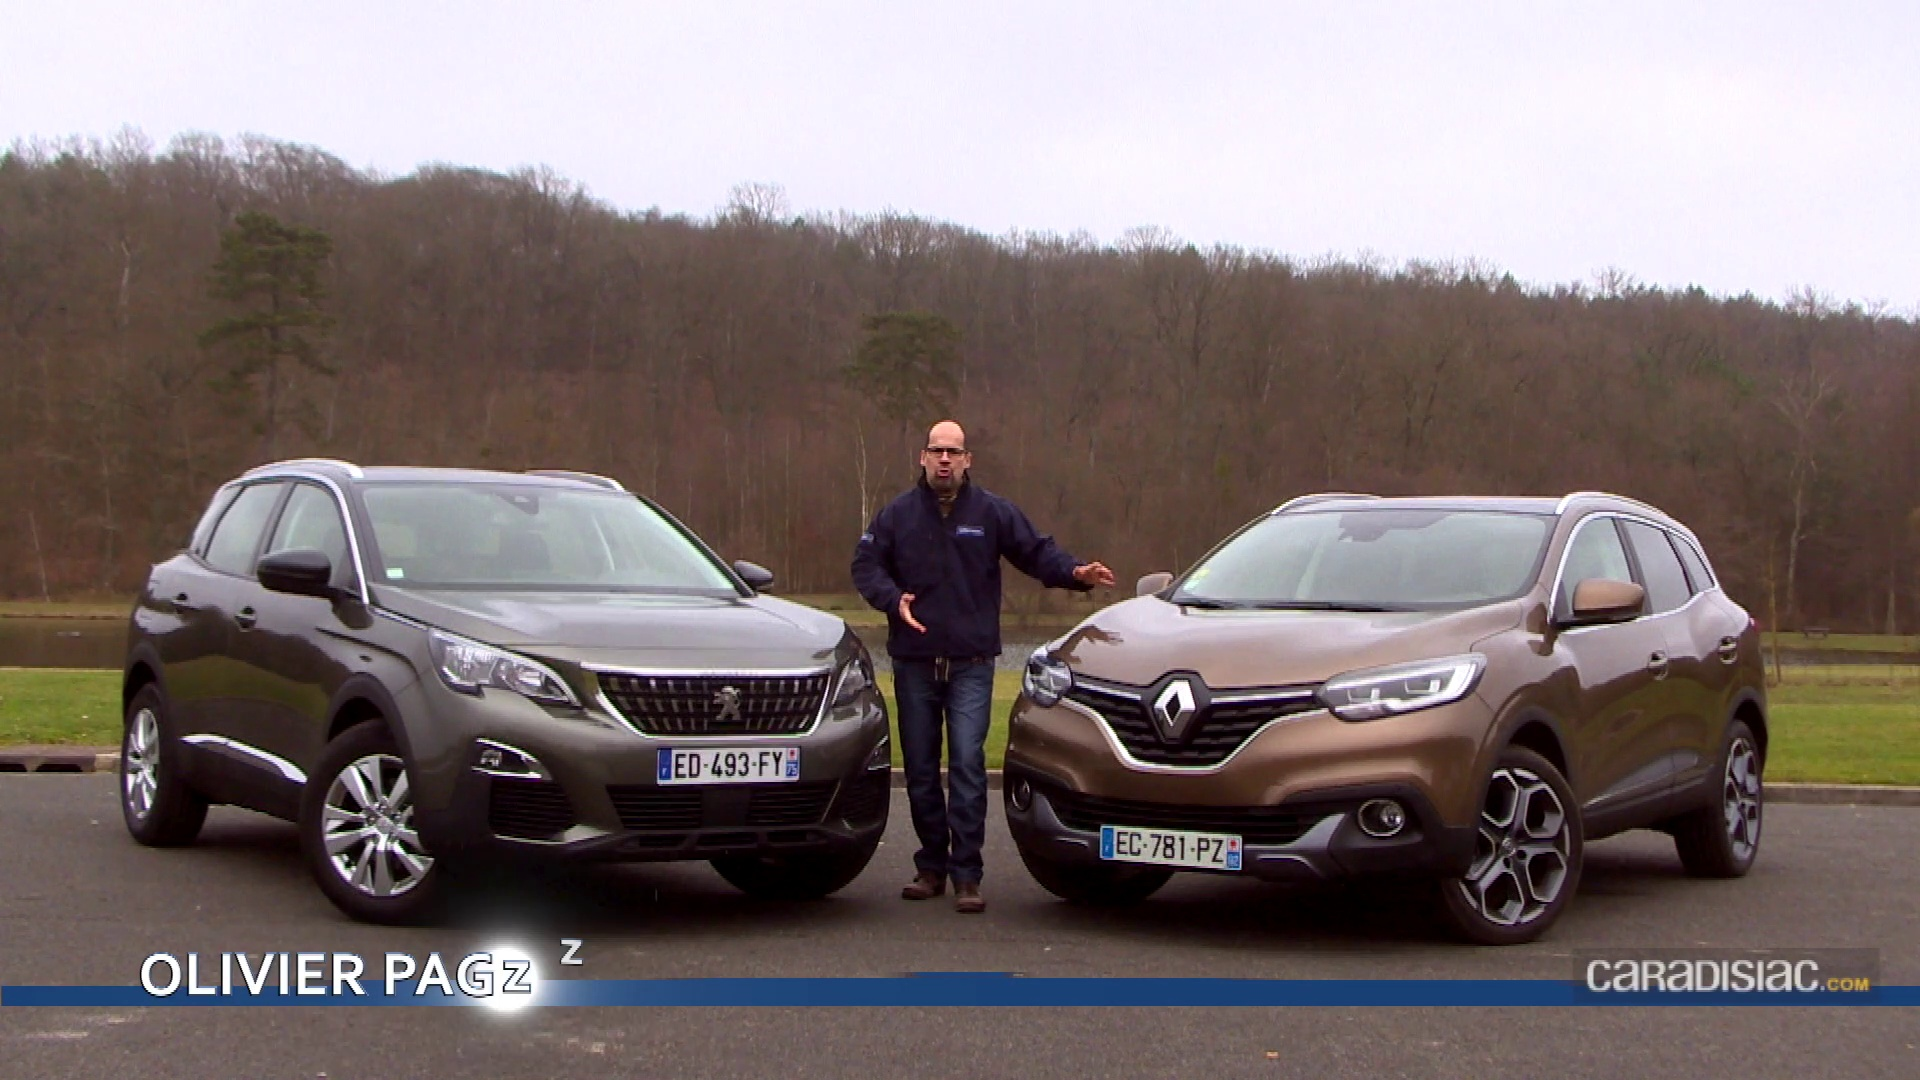 comparatif 3008 vs kadjar